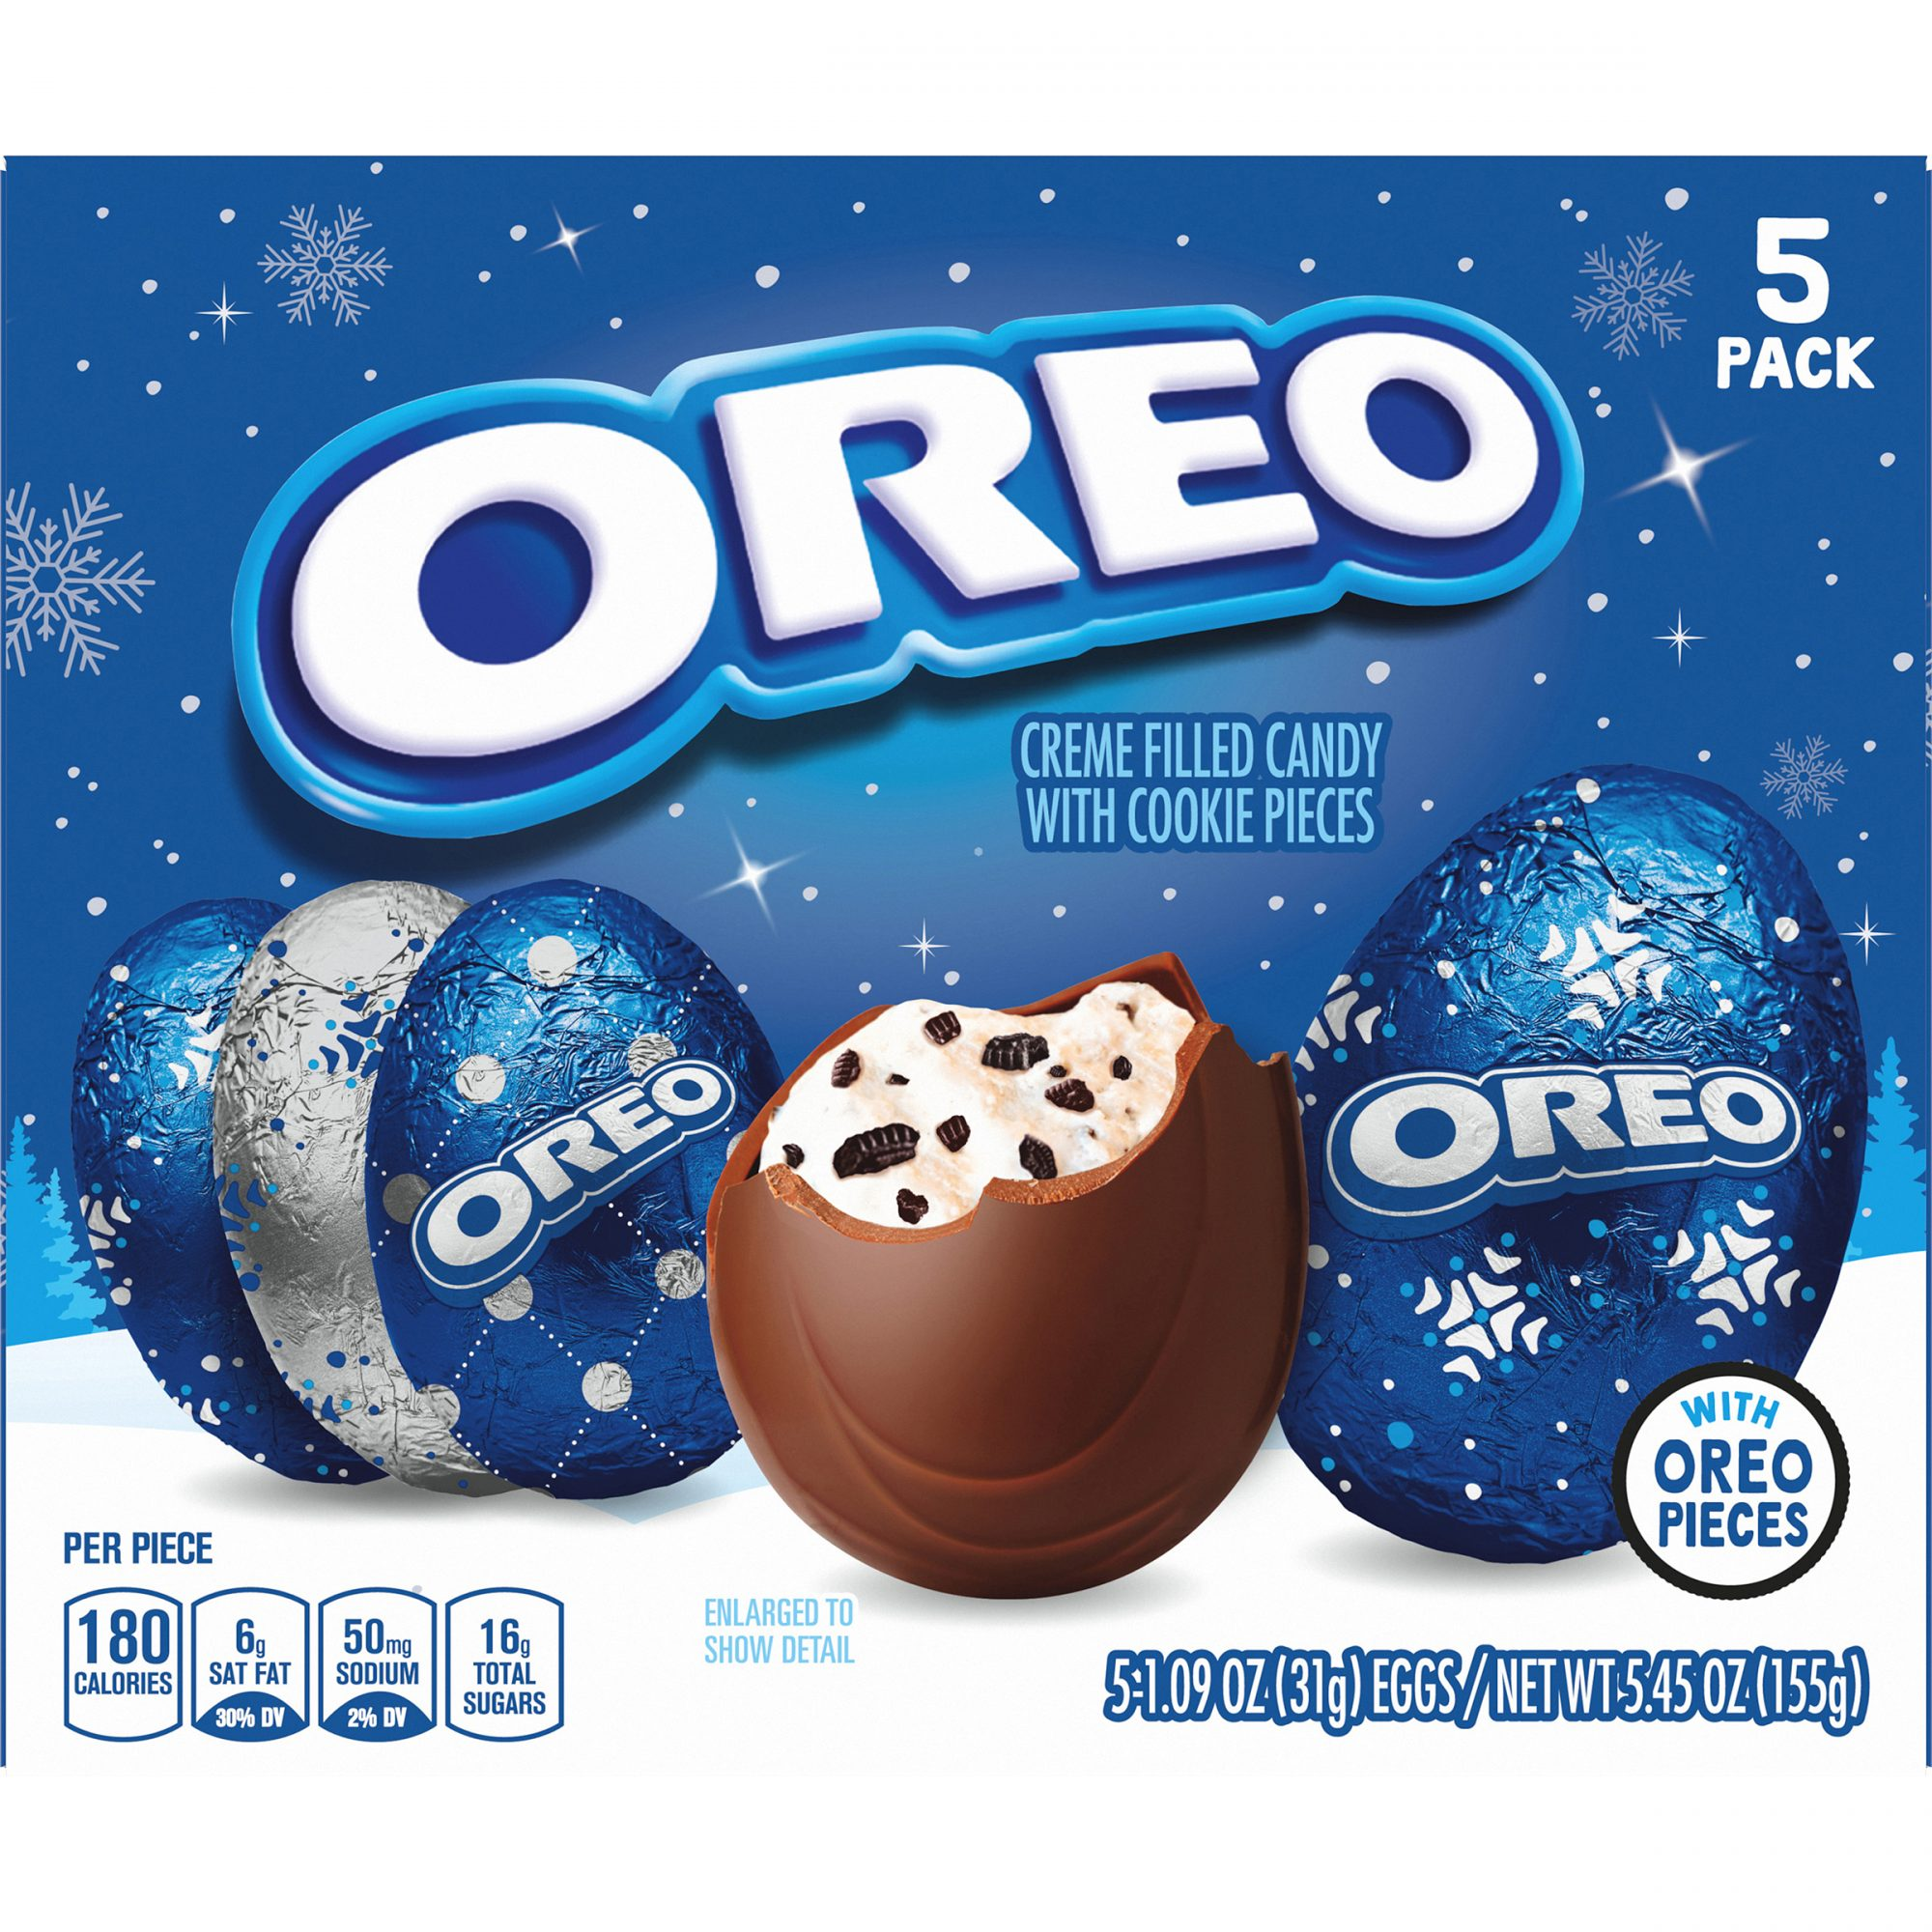 Oreo Just Released Festive Creme-Filled Eggs and We Want Them In Our Stockings Now